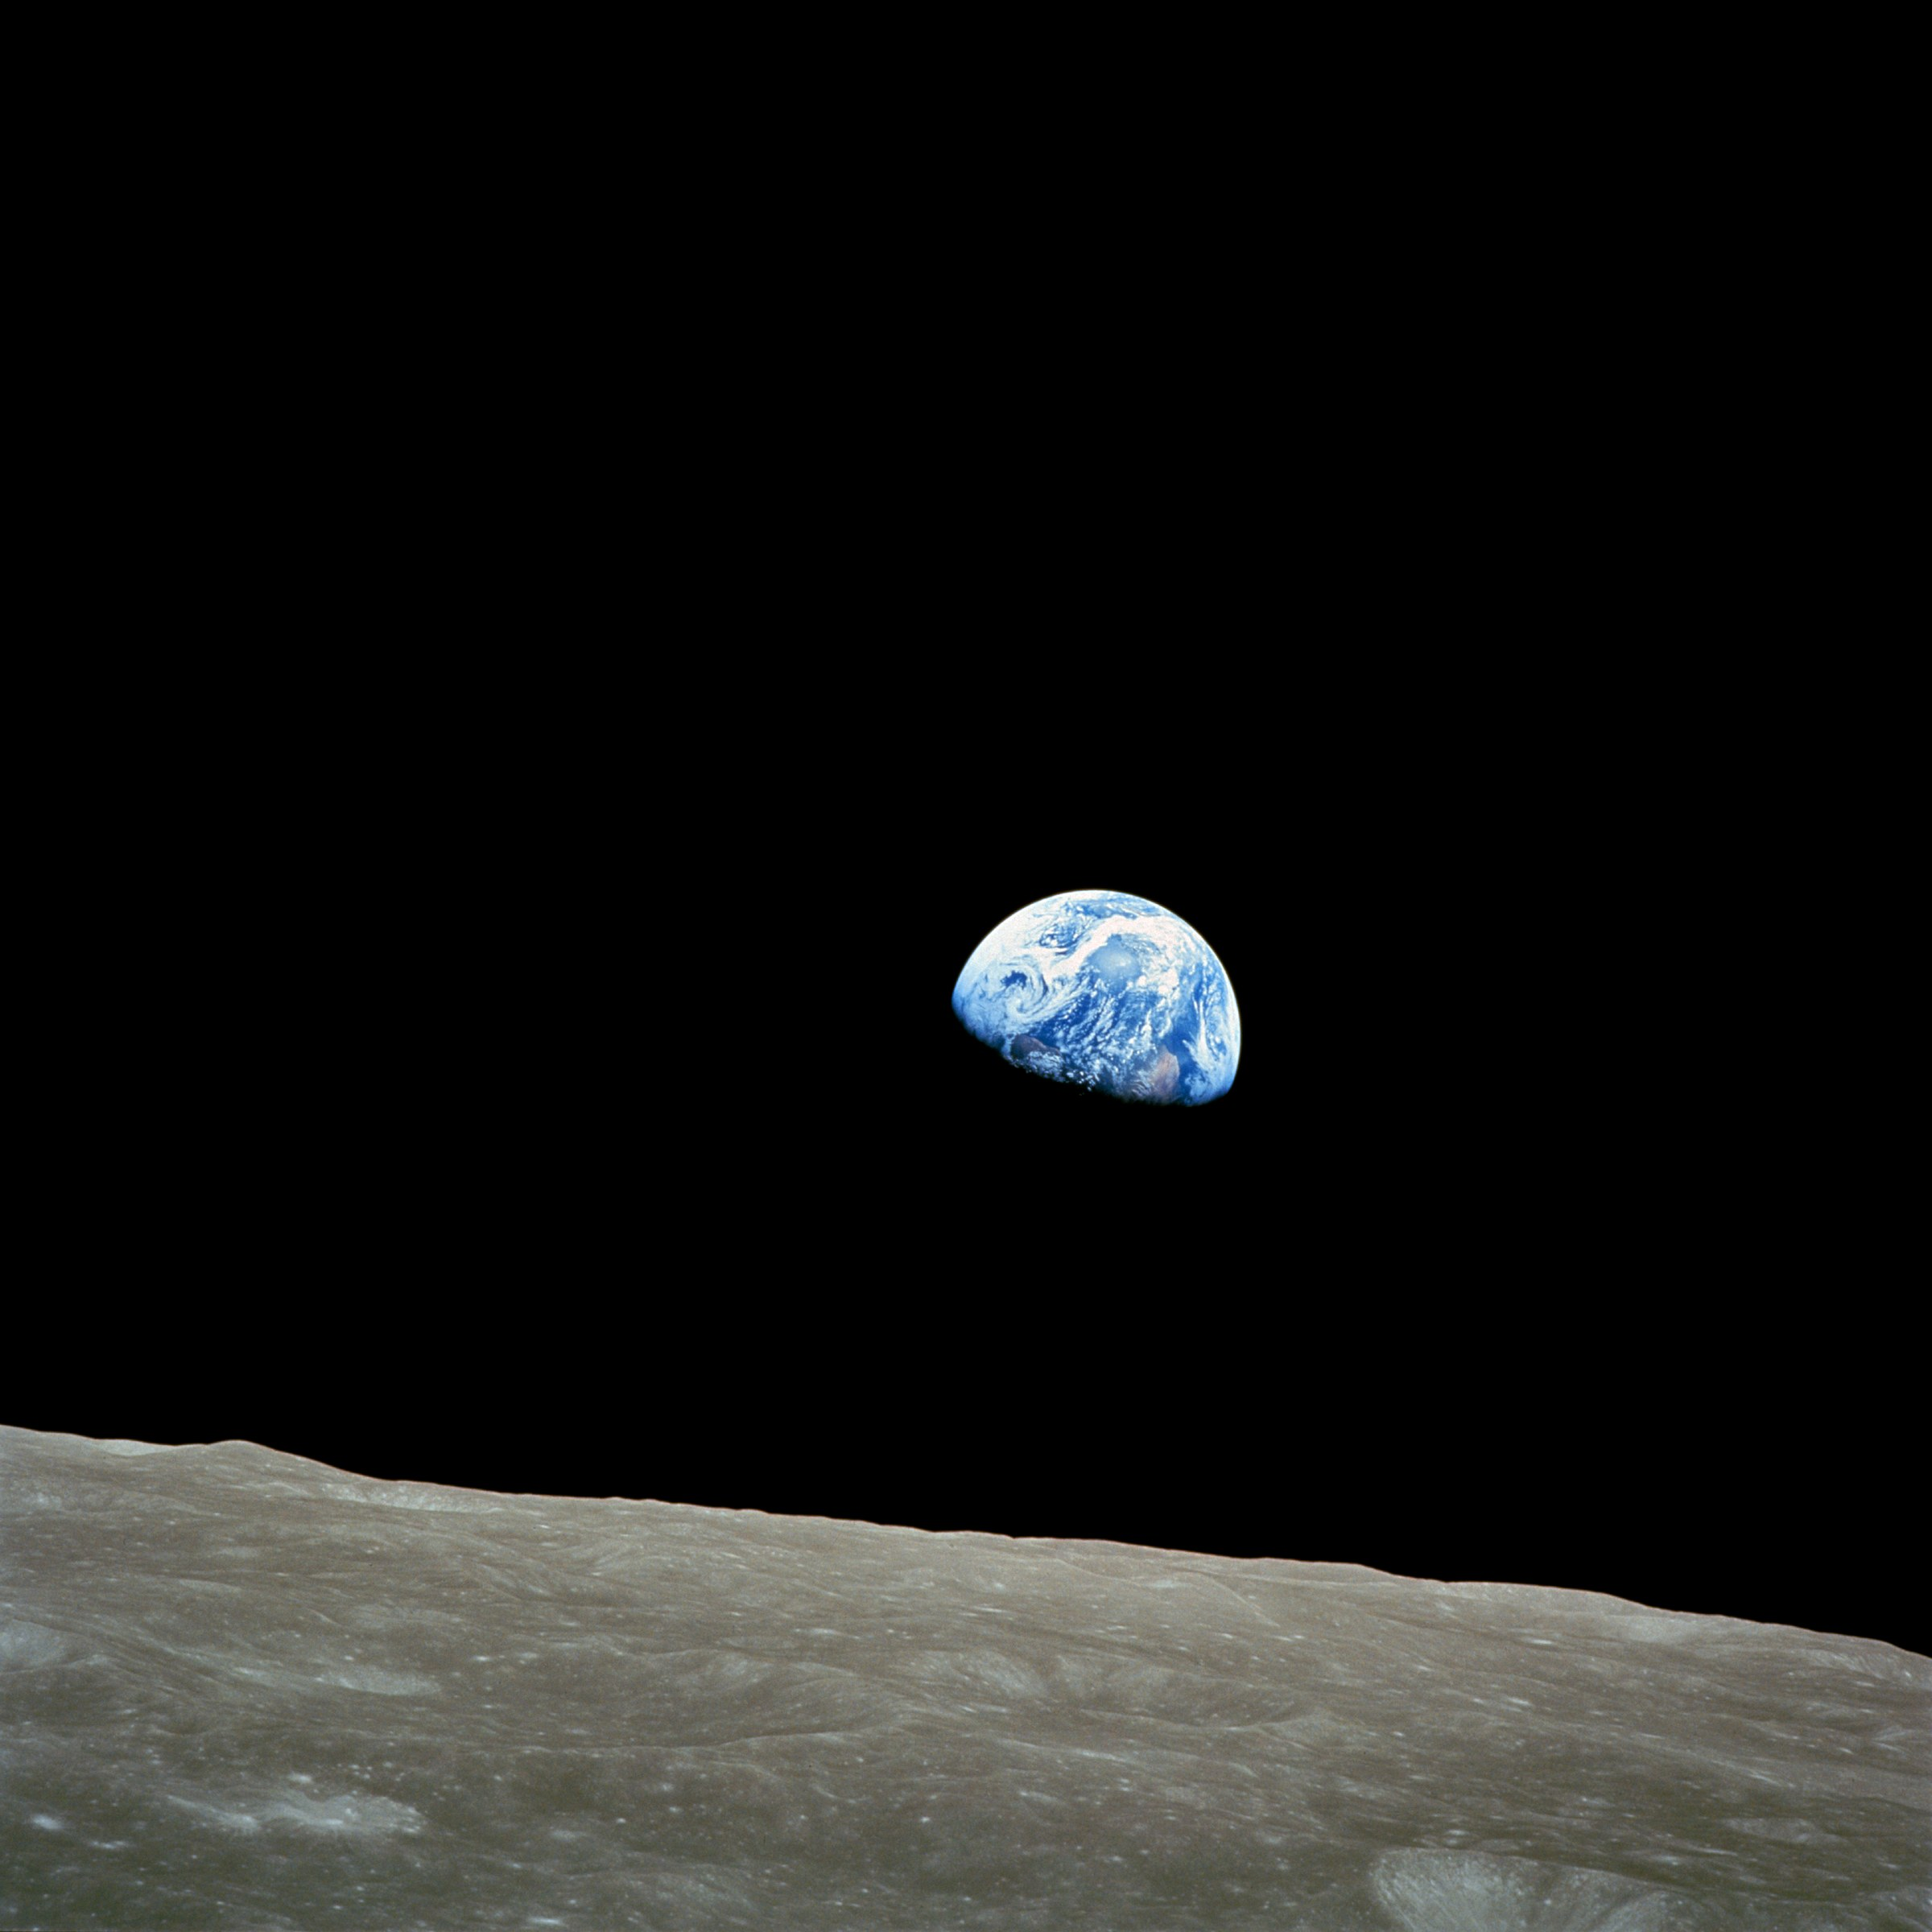 Taken by Apollo 8 crewmember Bill Anders on December 24, 1968, at mission time 075:49:07 [1] (16:40 UTC), source: https://commons.wikimedia.org/wiki/File:NASA-Apollo8-Dec24-Earthrise.jpg